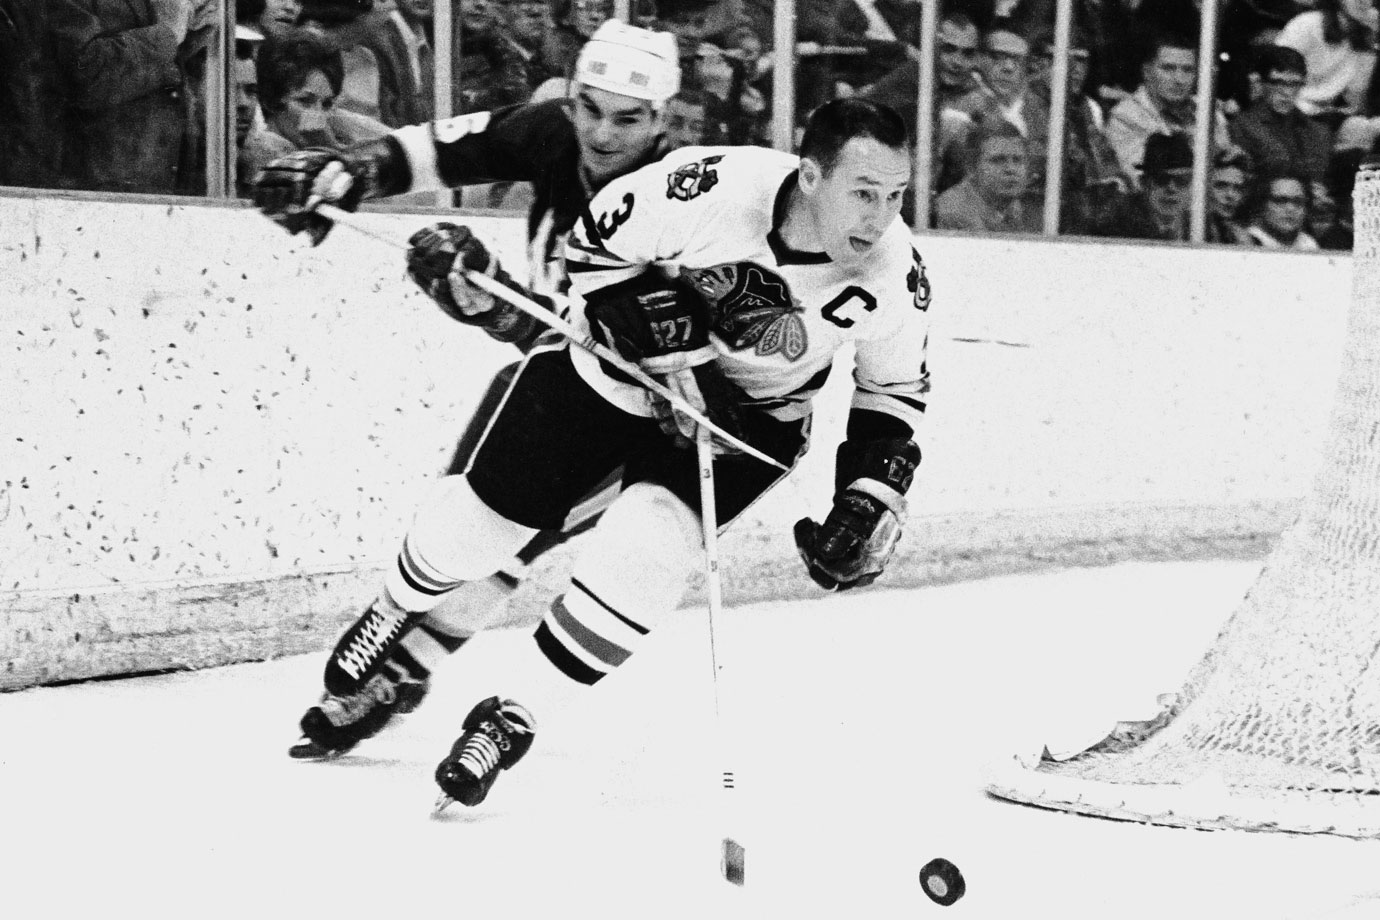 The Blackhawk Hall of Famer's lack of size belied his toughness and ferocity. He was an ironman workhorse who once cold-cocked both Rocket and Henri Richard in one brawl. One of the game's best blueliners of the 1950s (three Norris trophies), Pilote's name went on the Stanley Cup along with Bobby Hull's and Stan Mikita's in 1961. Of note, Zdeno Chara, the 2008-09 Norris Trophy-winner, wore 3 for his first eight seasons before switching to 33 in Boston, where he has produced his best numbers.